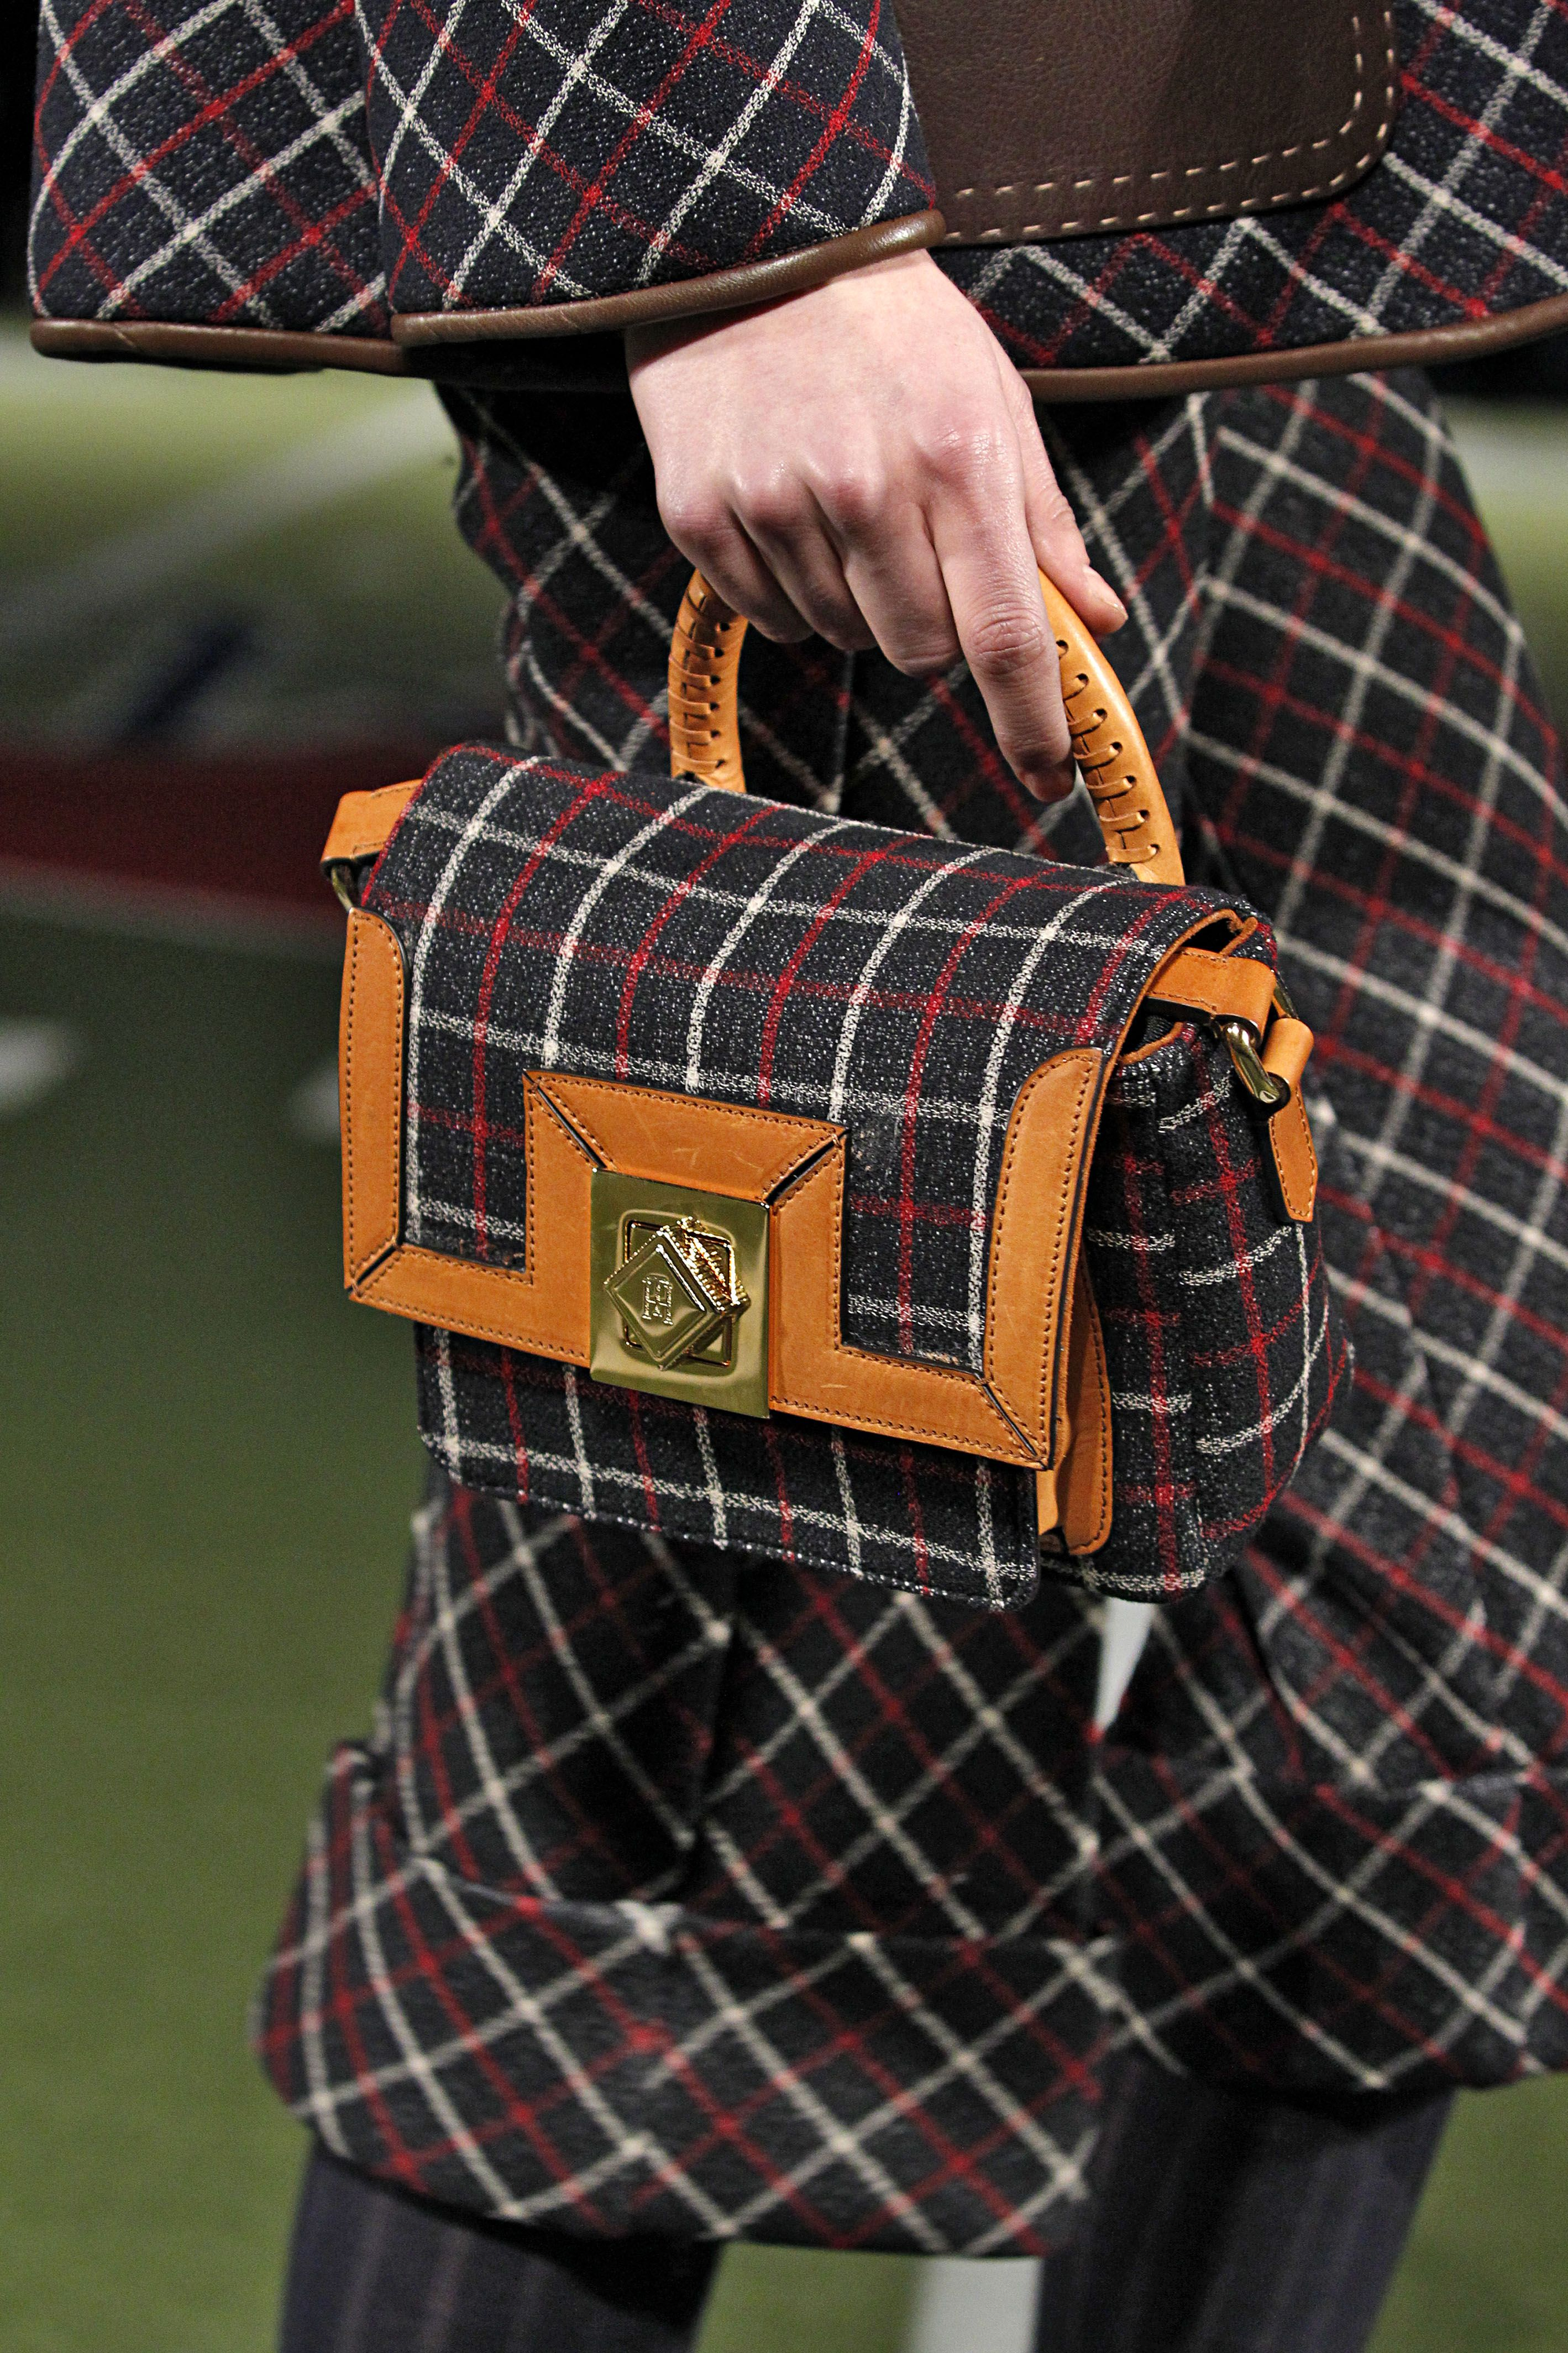 Key Items: Bags - Top Handle, Details 1 - Football Lacing  I  Tommy Hilfiger